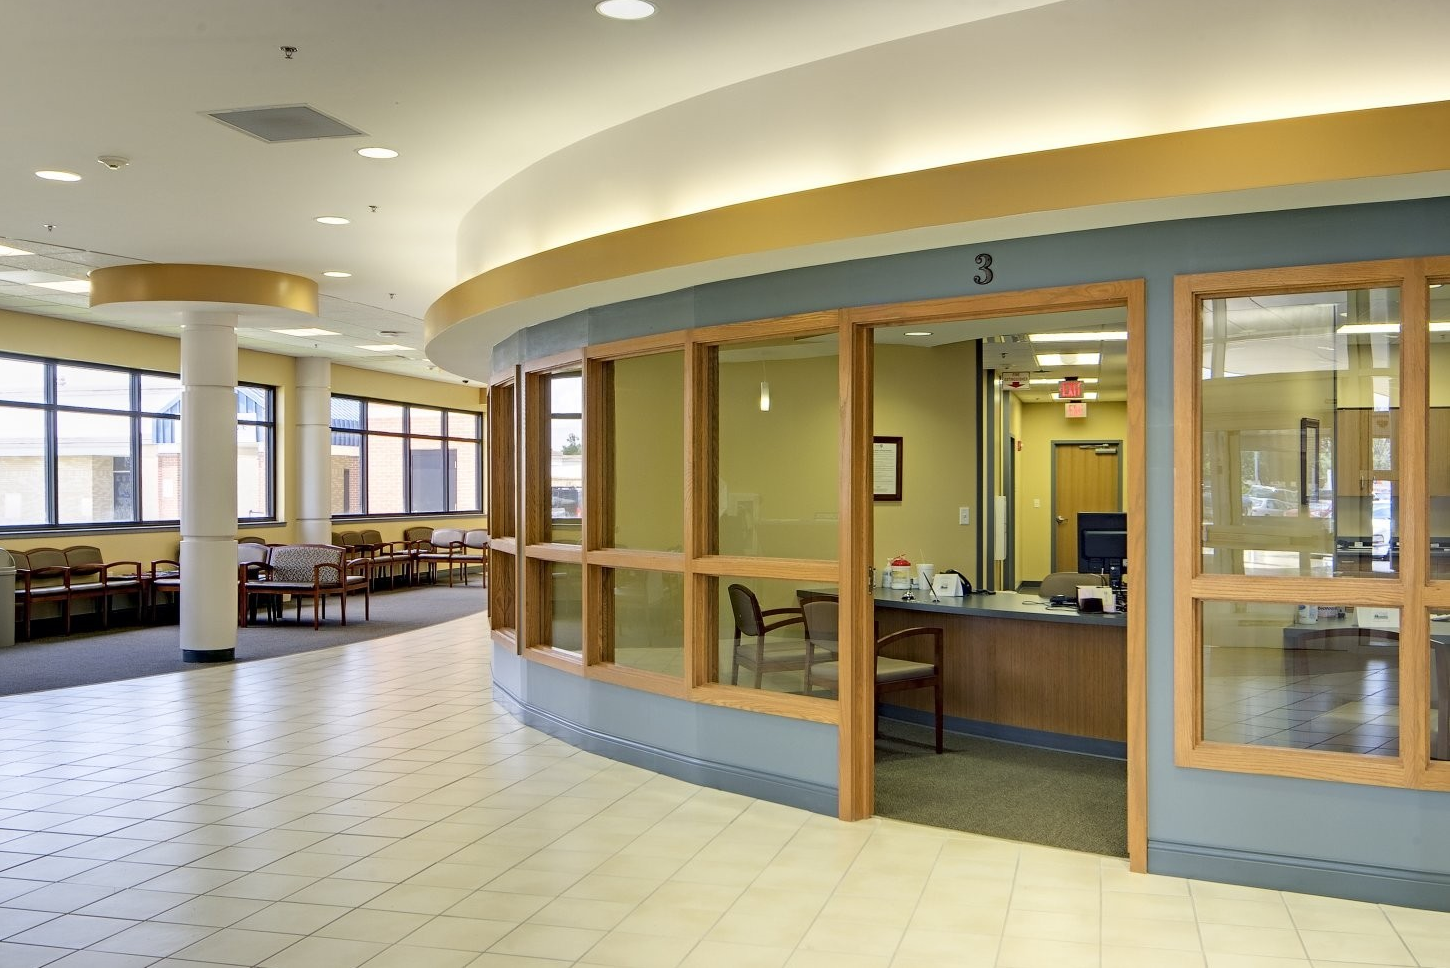 West Calcasieu Cameron Hospital Sulphur La Eloquence Side Guest Seating In Lobby Reception Area Nationaloffice Fu Lobby Reception Reception Areas Seating